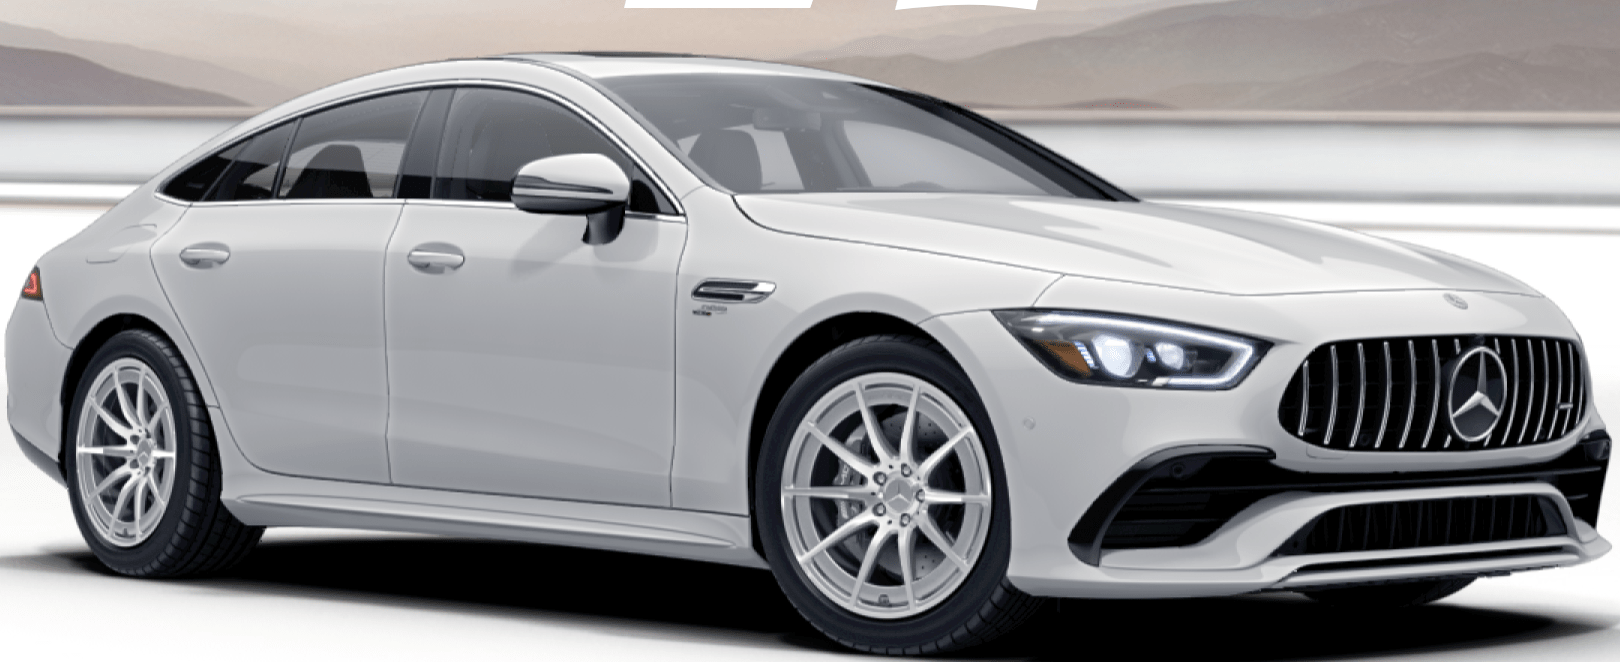 c9d5d68c-4f4c-11e9-a3c9-06b79b628af2%2F1621040686864-AMG+GT+534-door+Coupe+%281%29-min.png